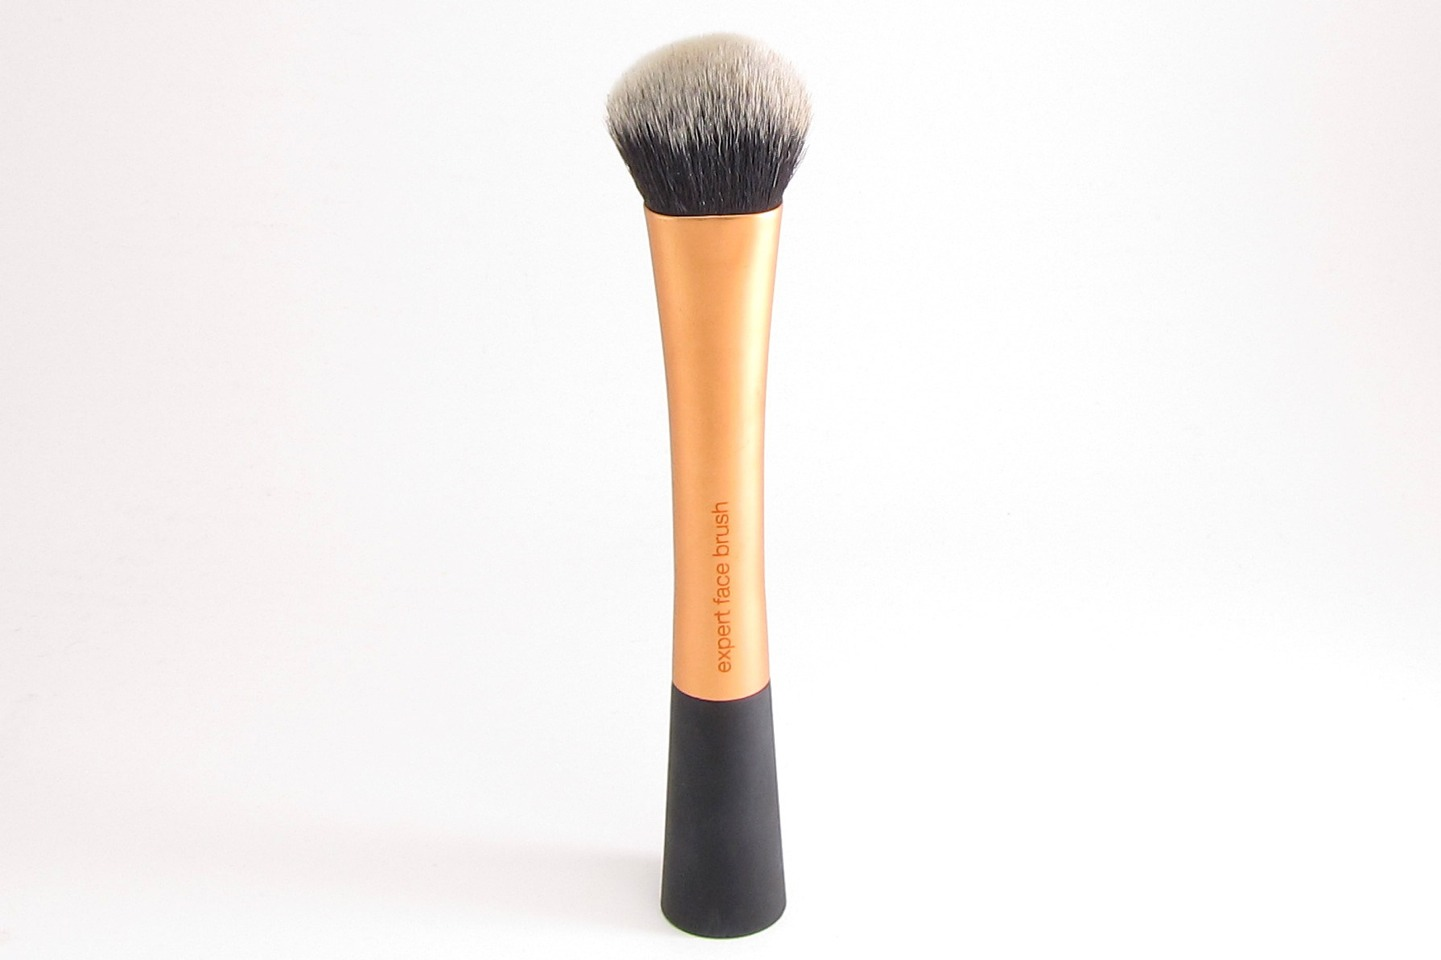 Double click Real techniques foundation brush £10